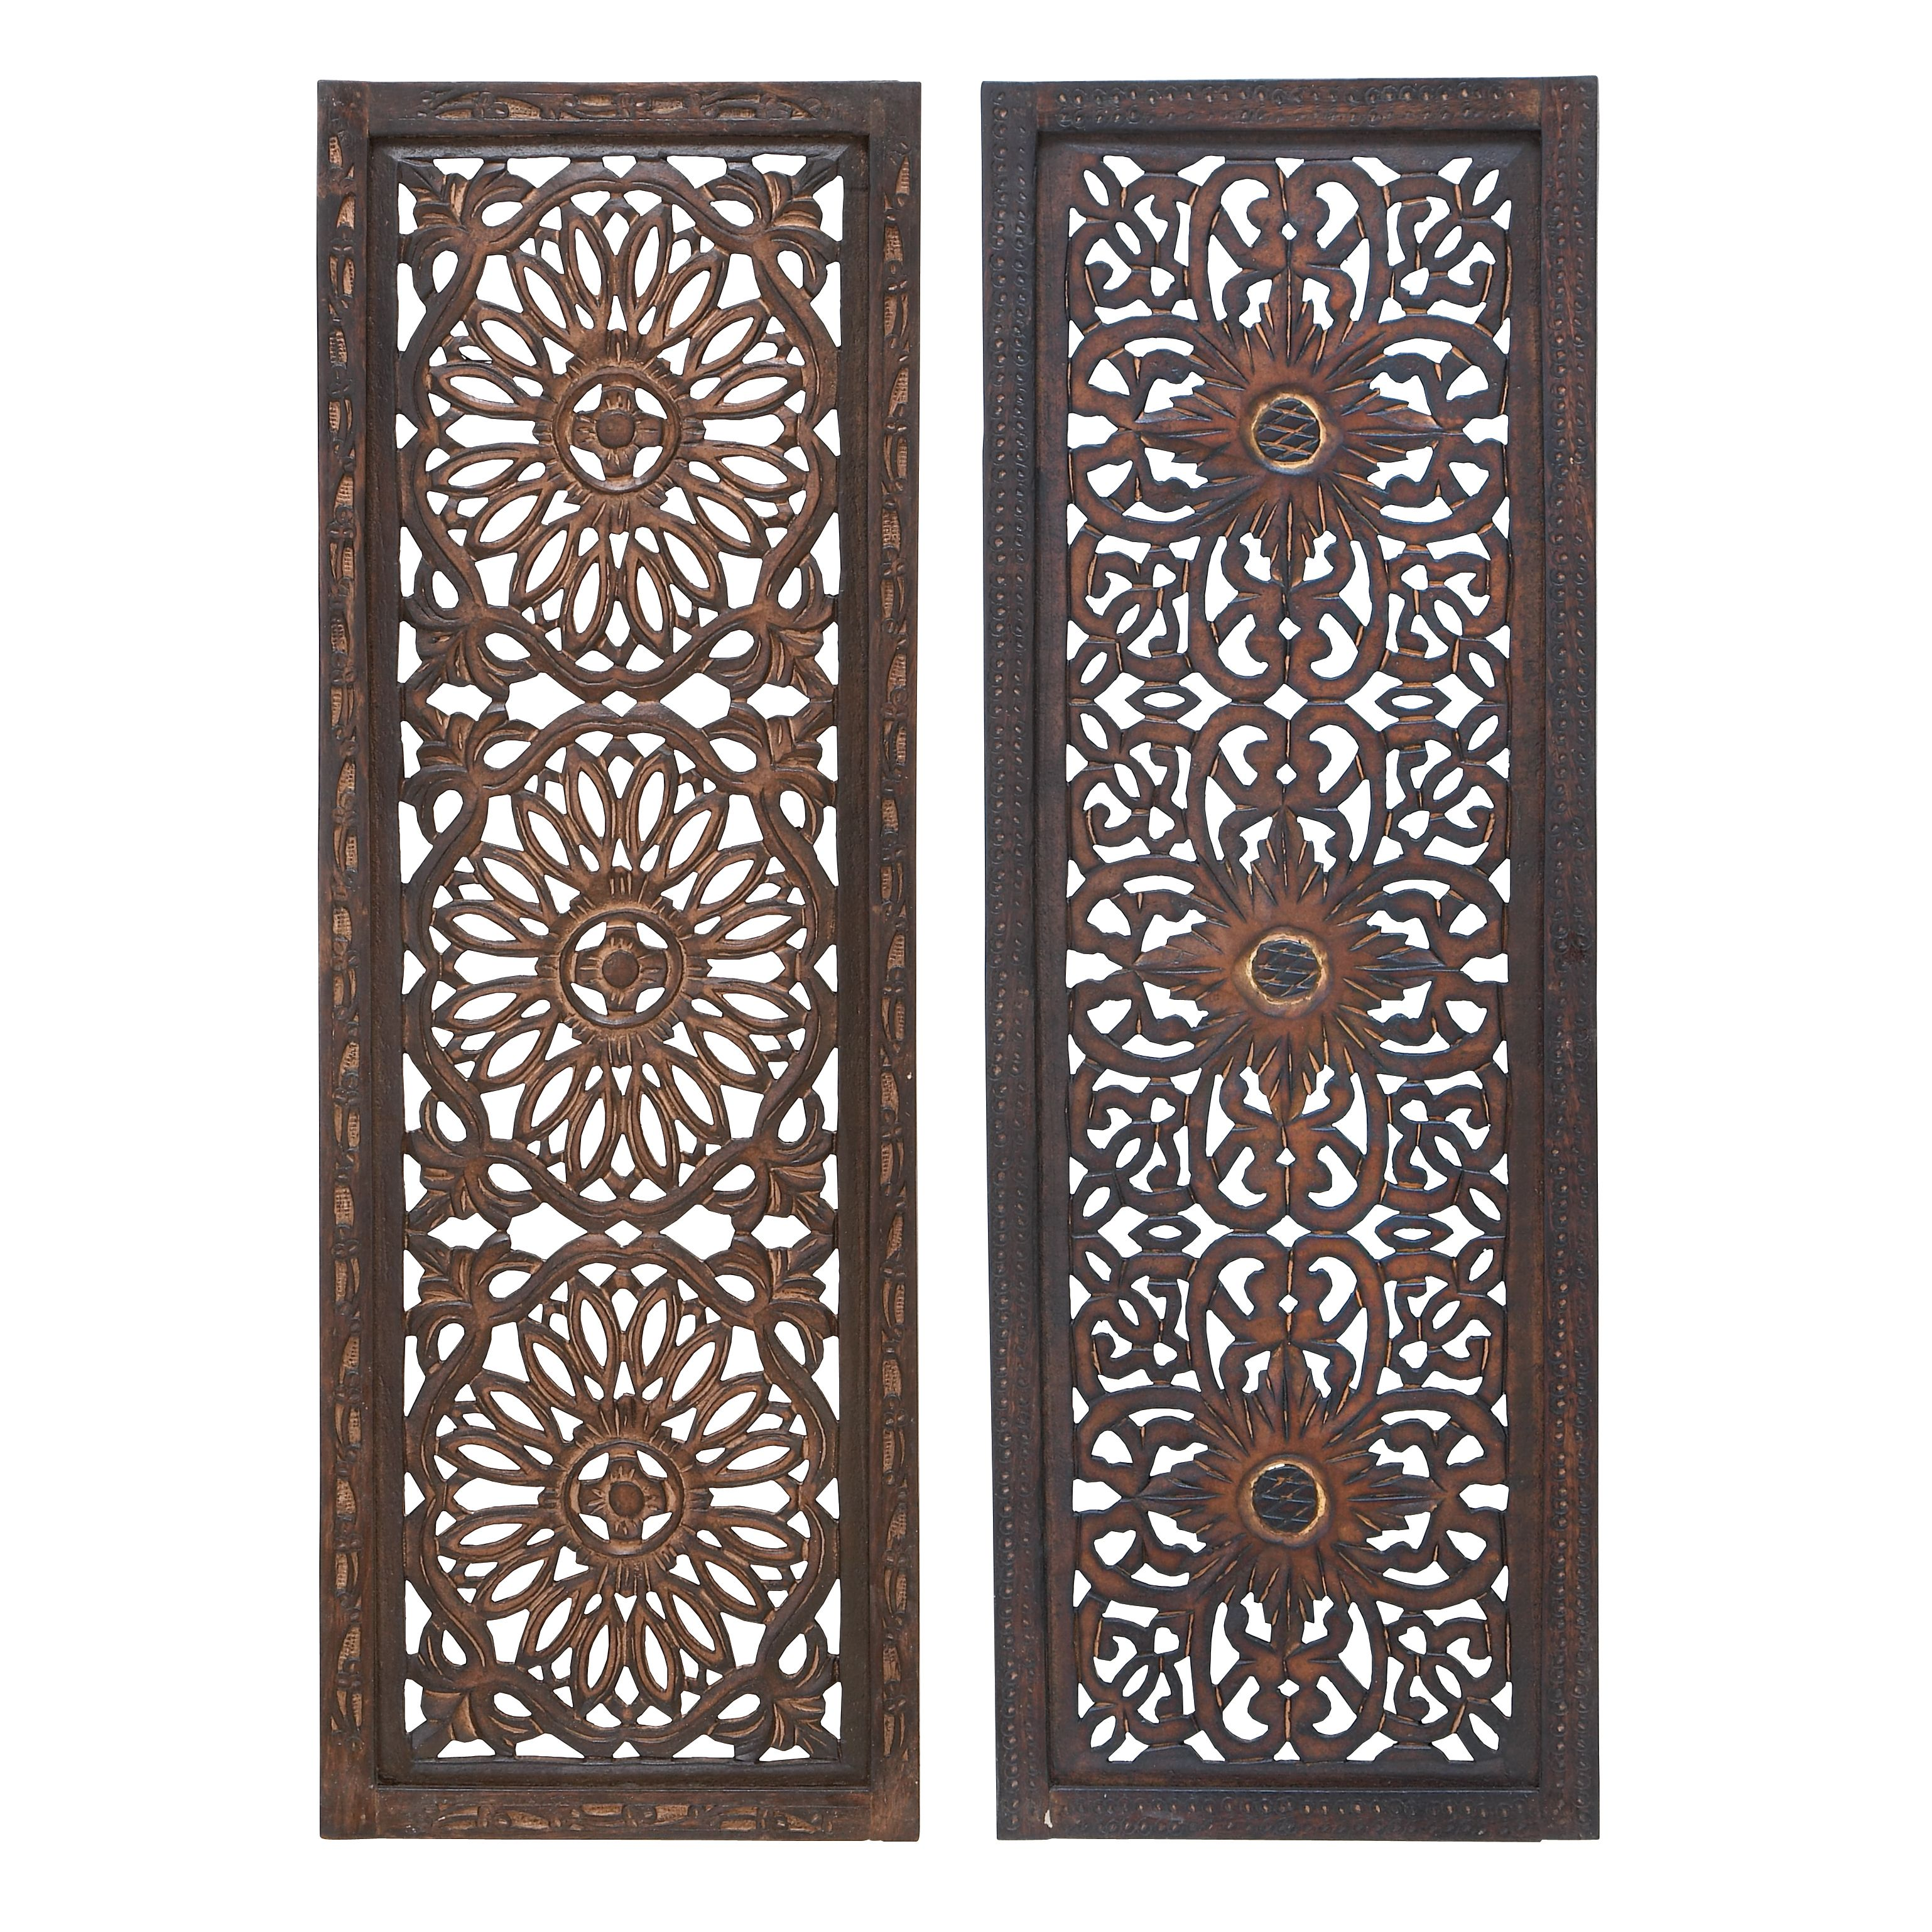 Piece wood wall panel by studio great deals sculpture and